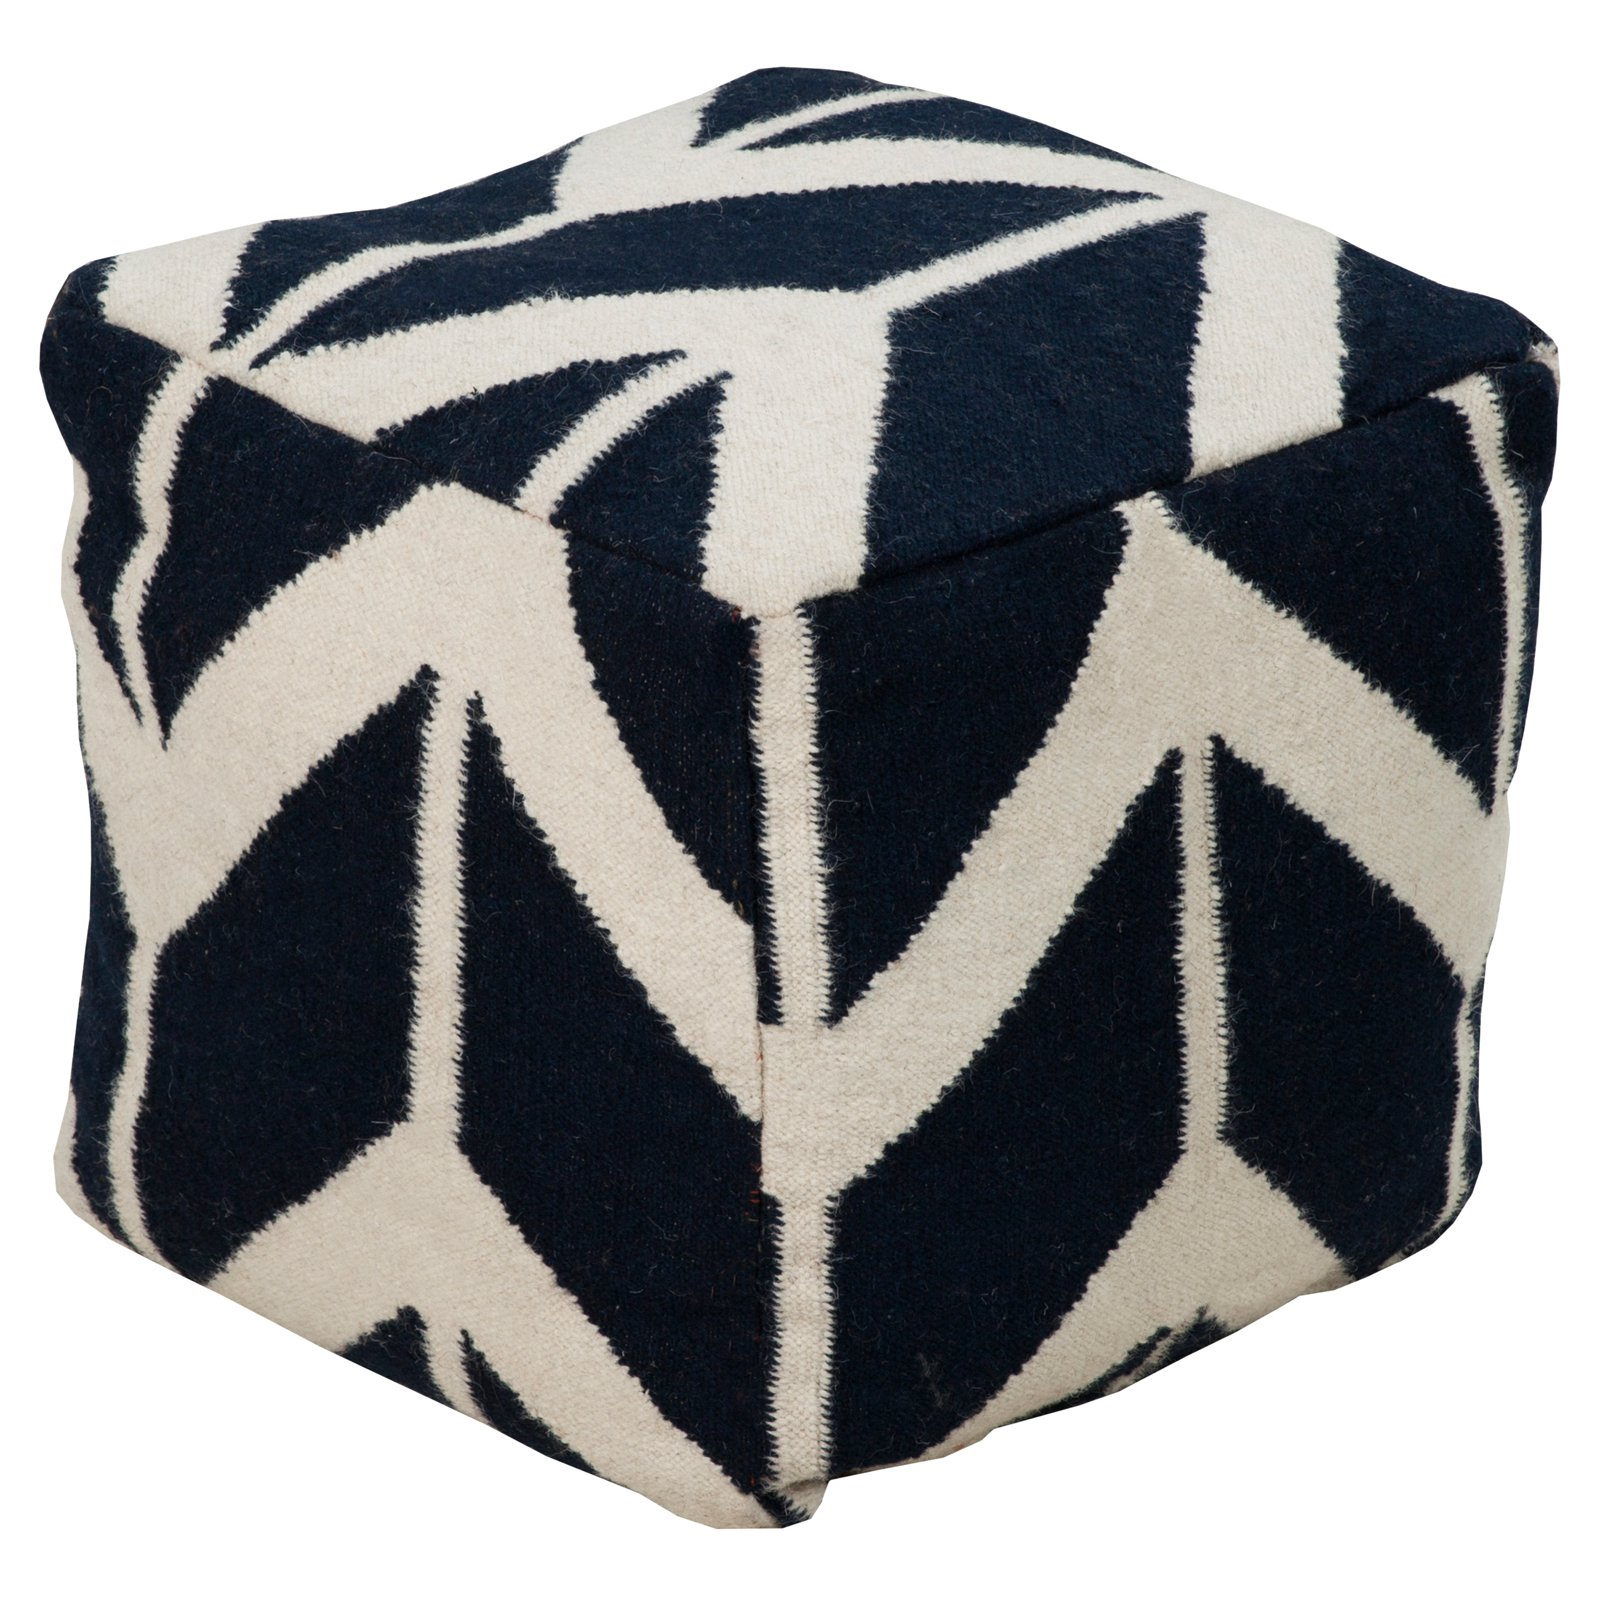 Surya 18 in. Corn Stalk Cube Wool Pouf by Surya